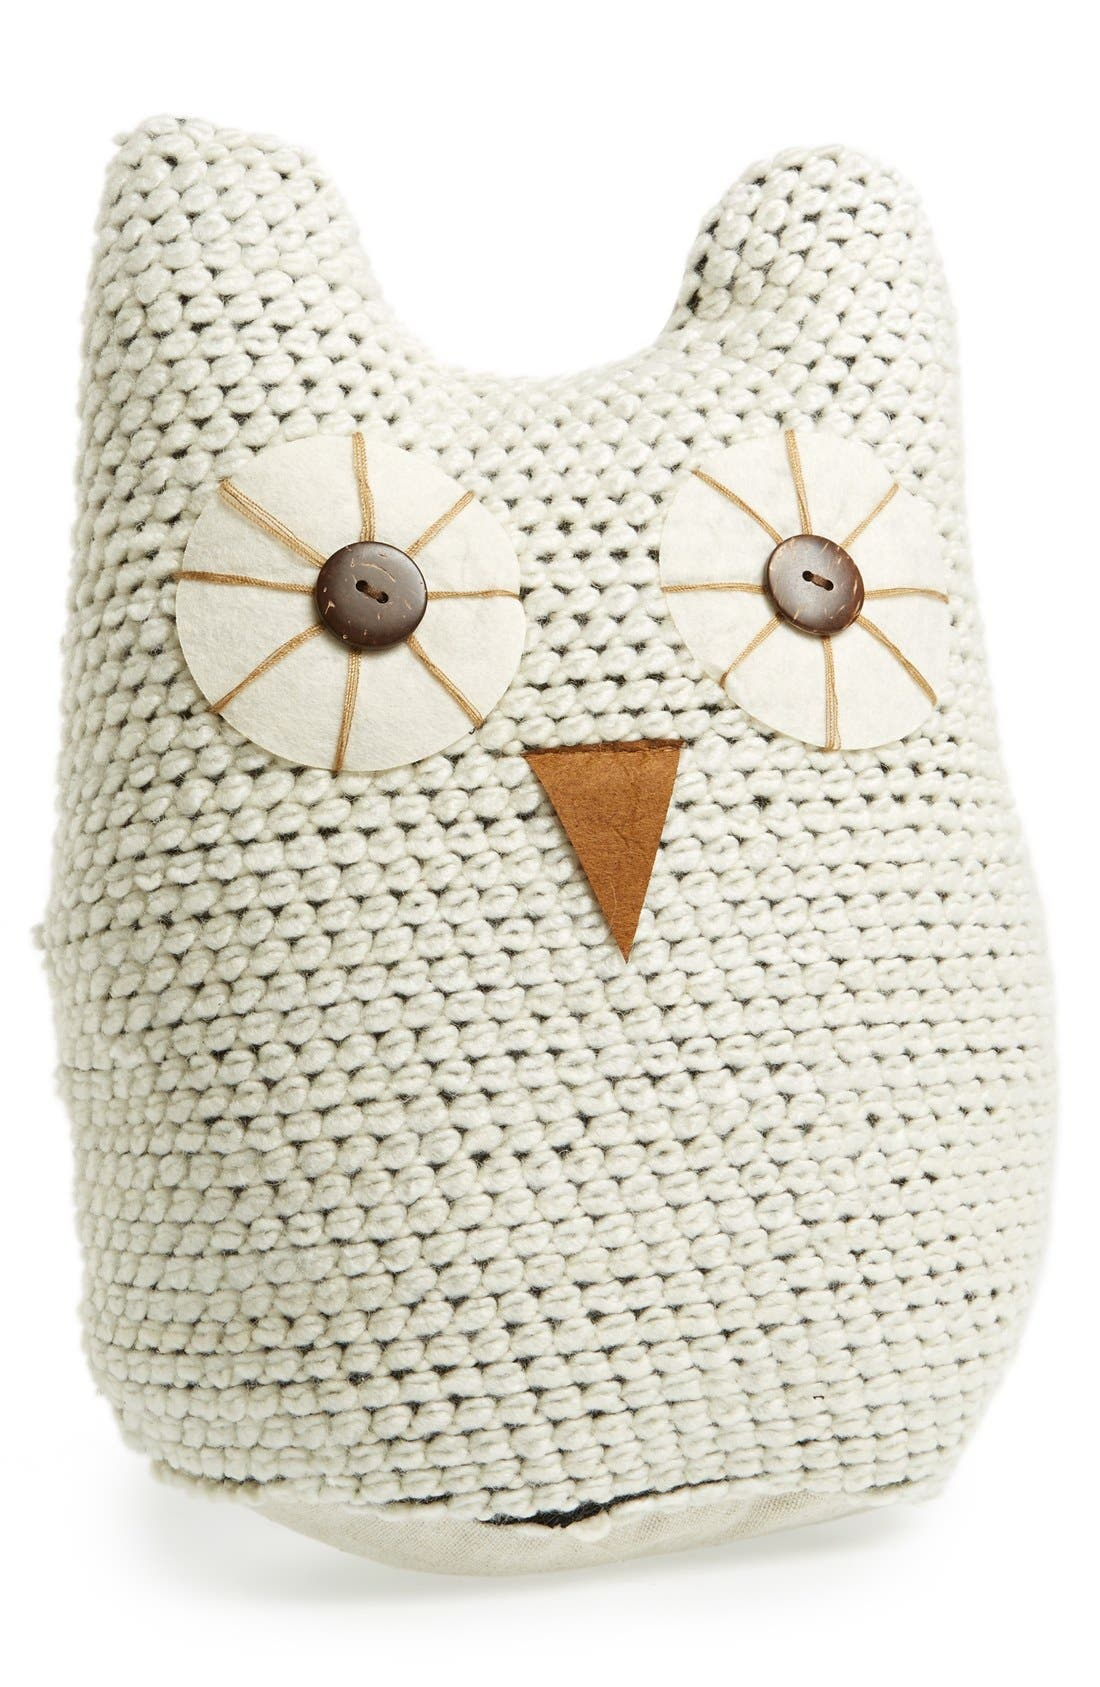 Alternate Image 1 Selected - Levtex Knit Owl Accent Pillow